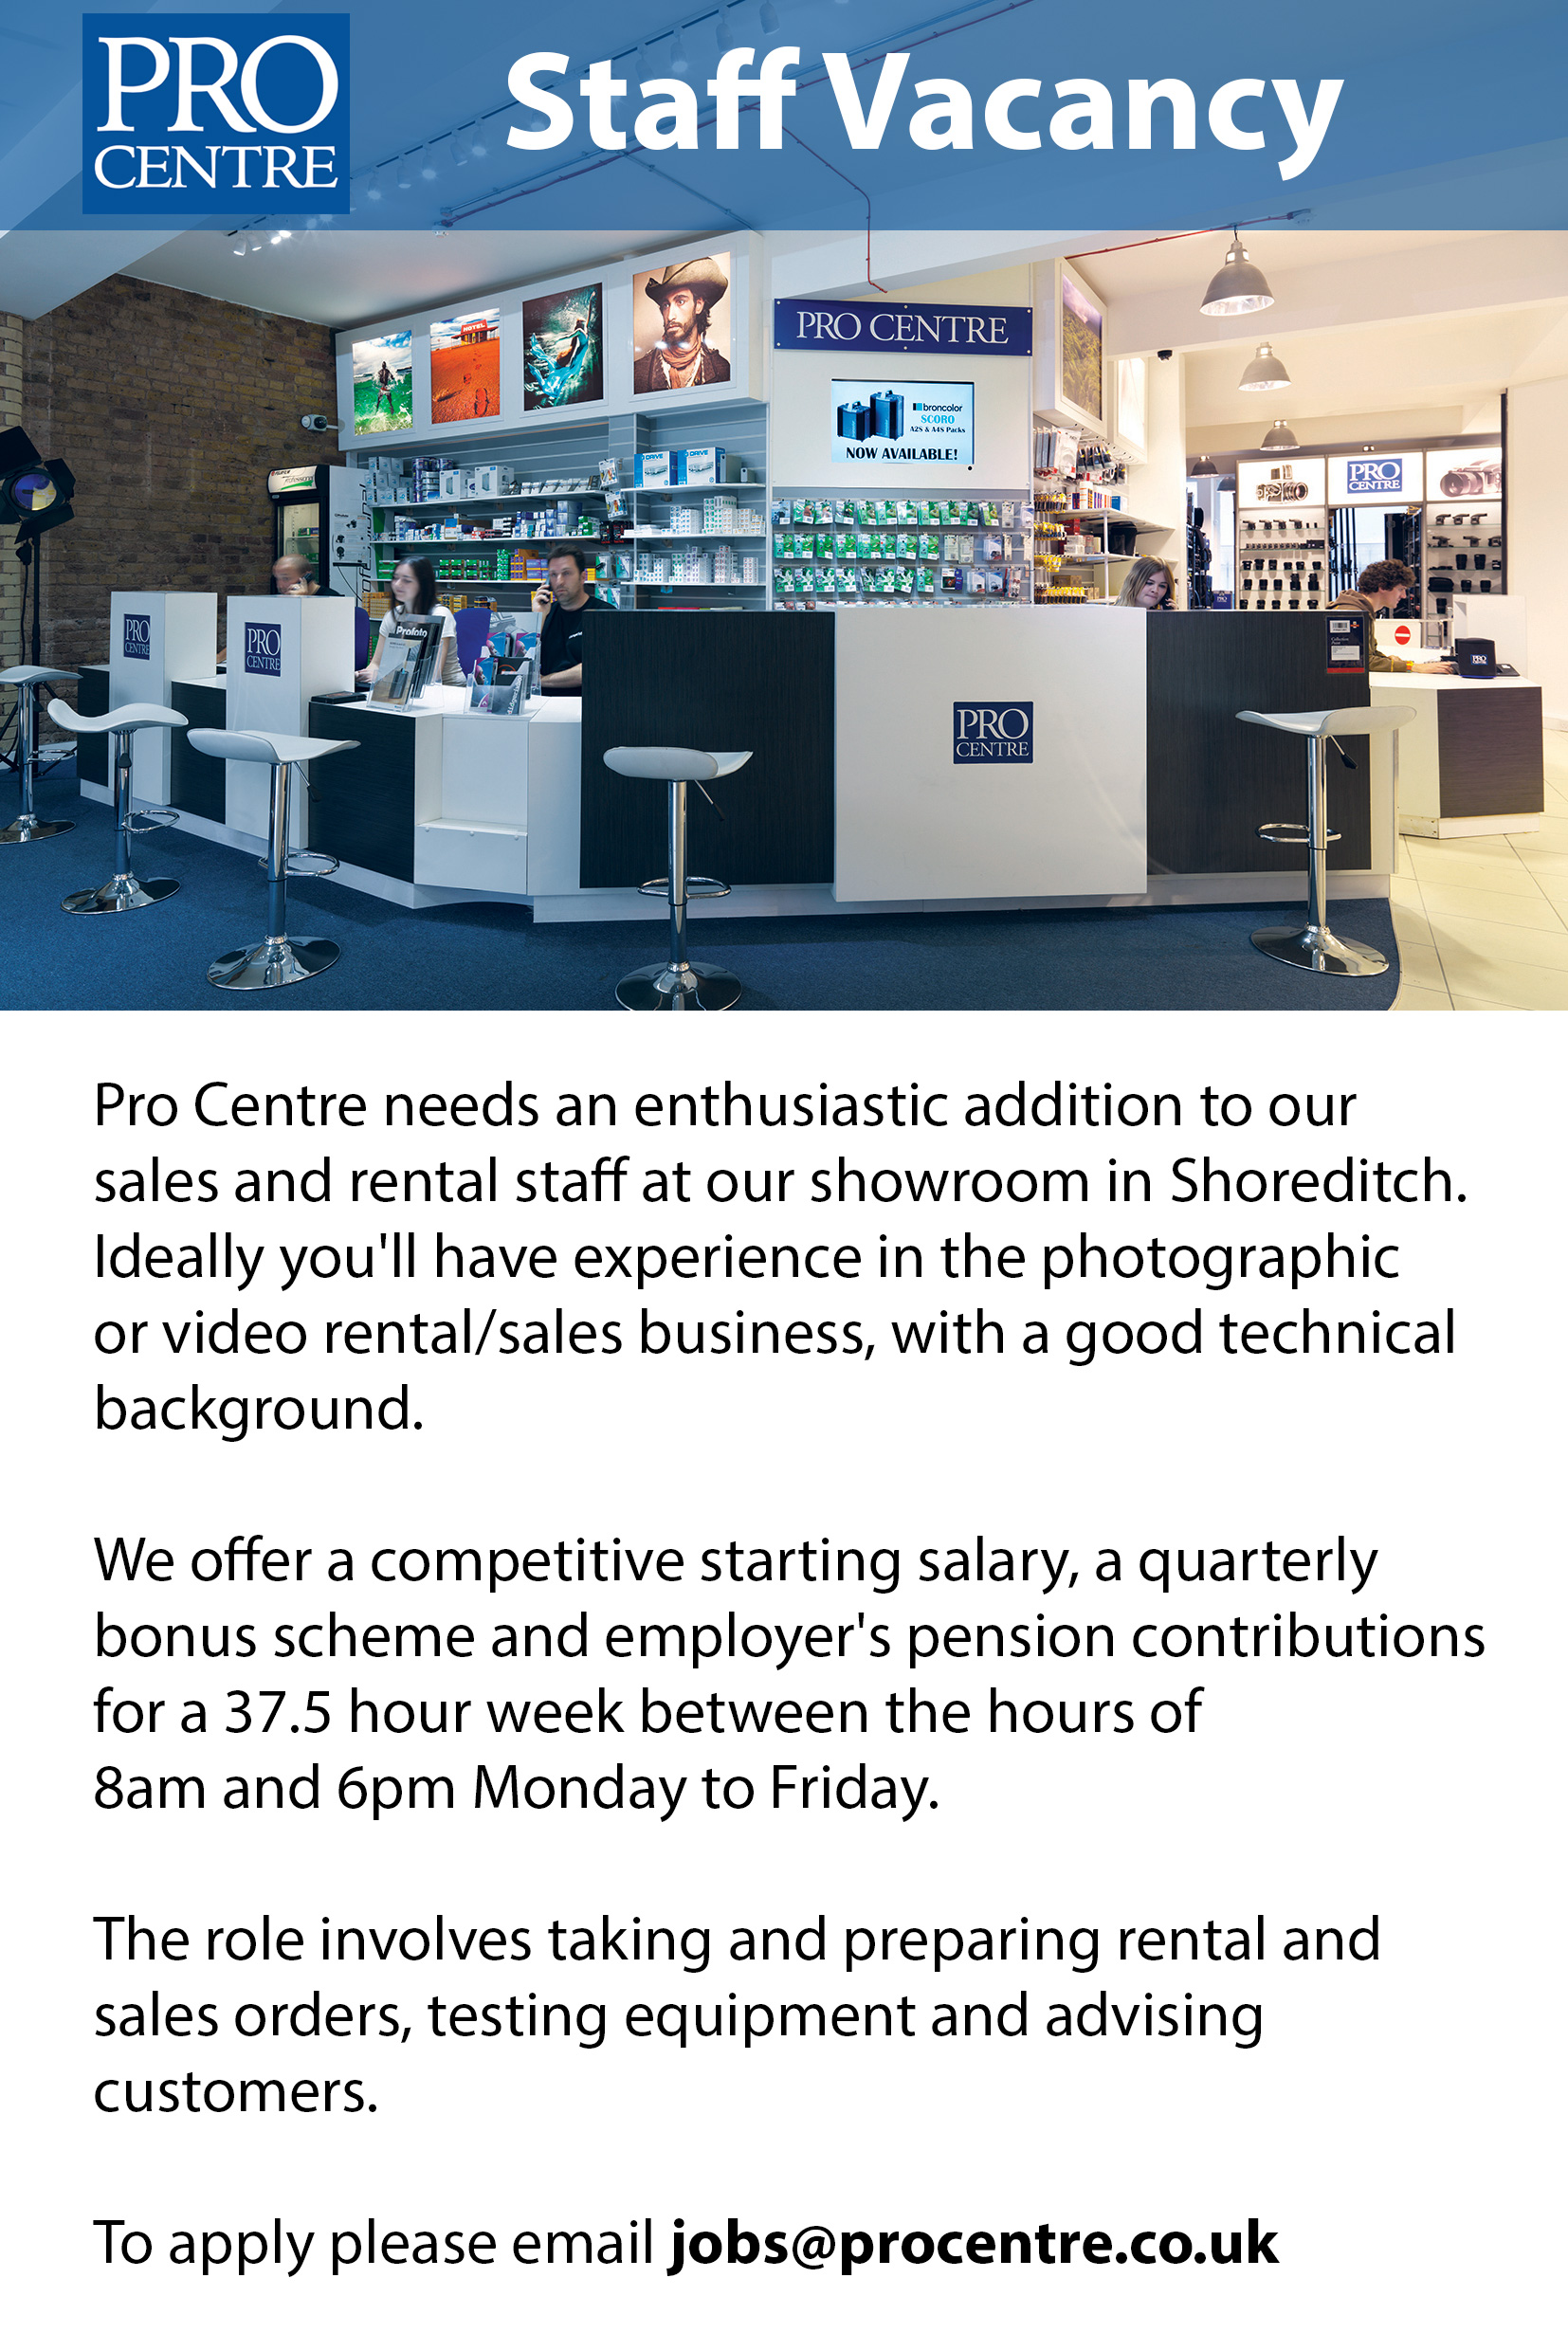 Staff vacancy at Procentre London